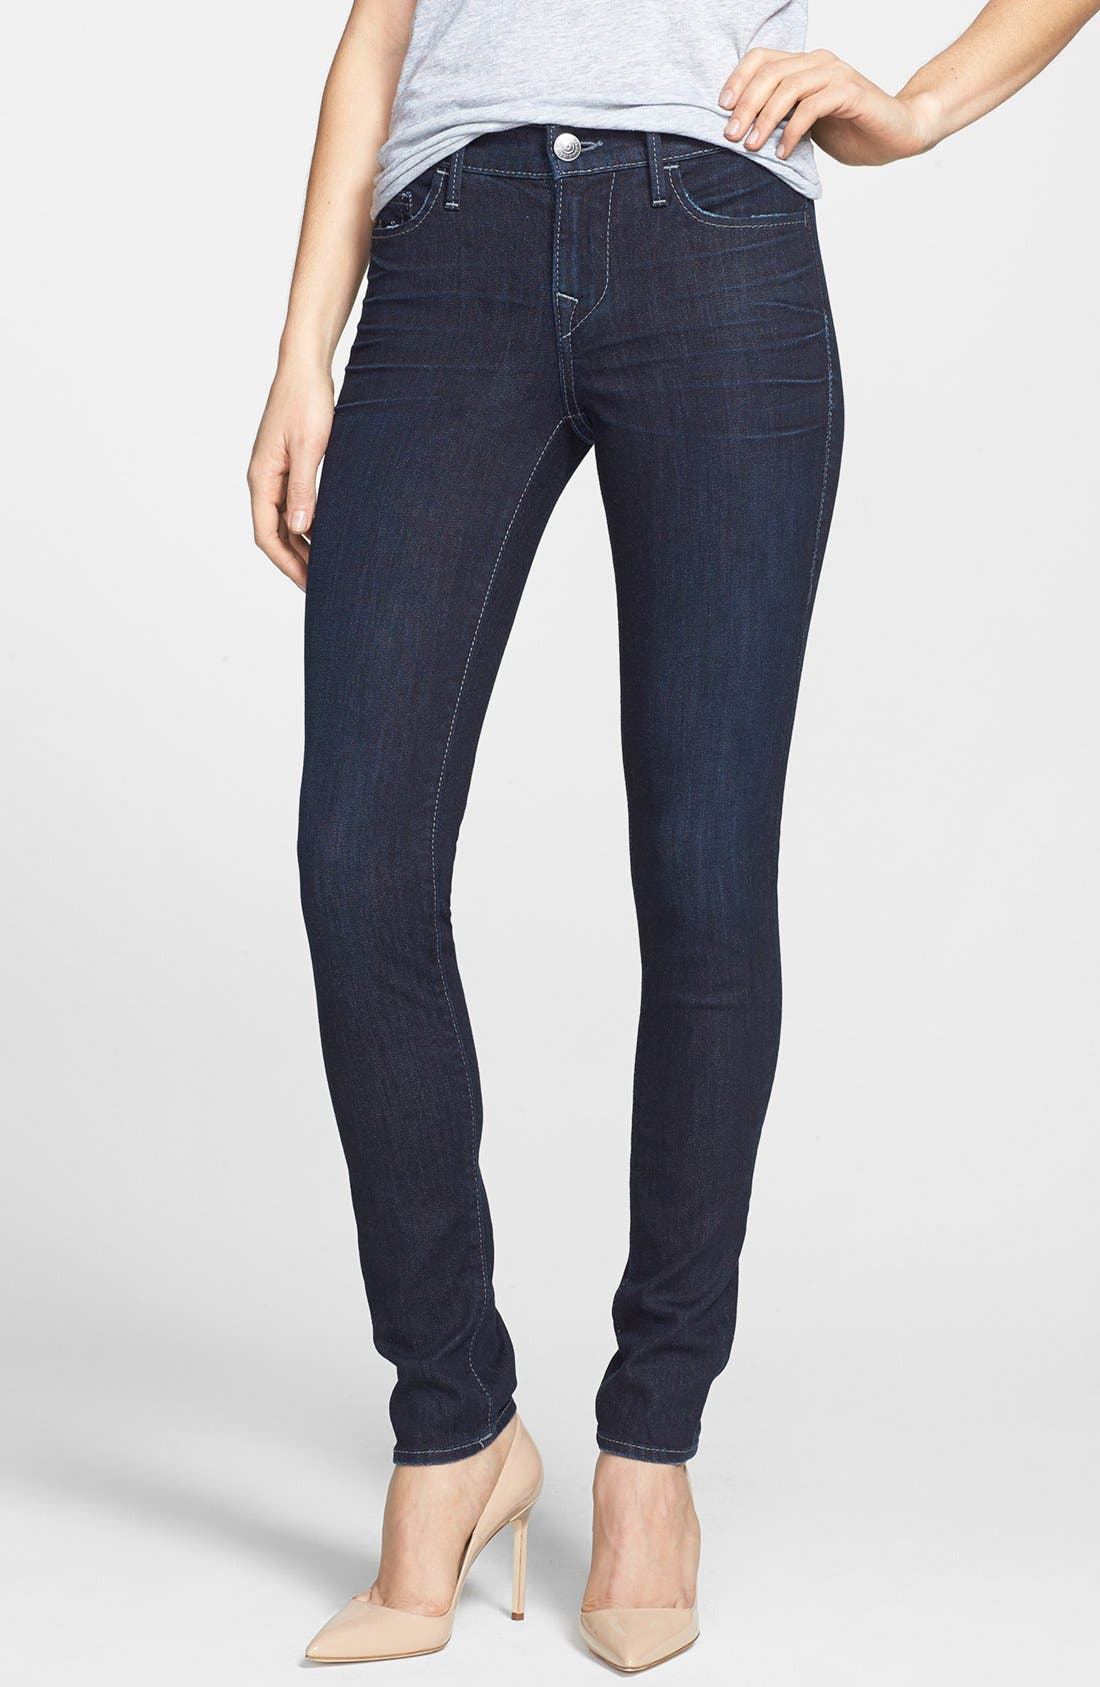 Main Image - True Religion Brand Jeans 'Abbey' Super Skinny Jeans (Baltic Ink)